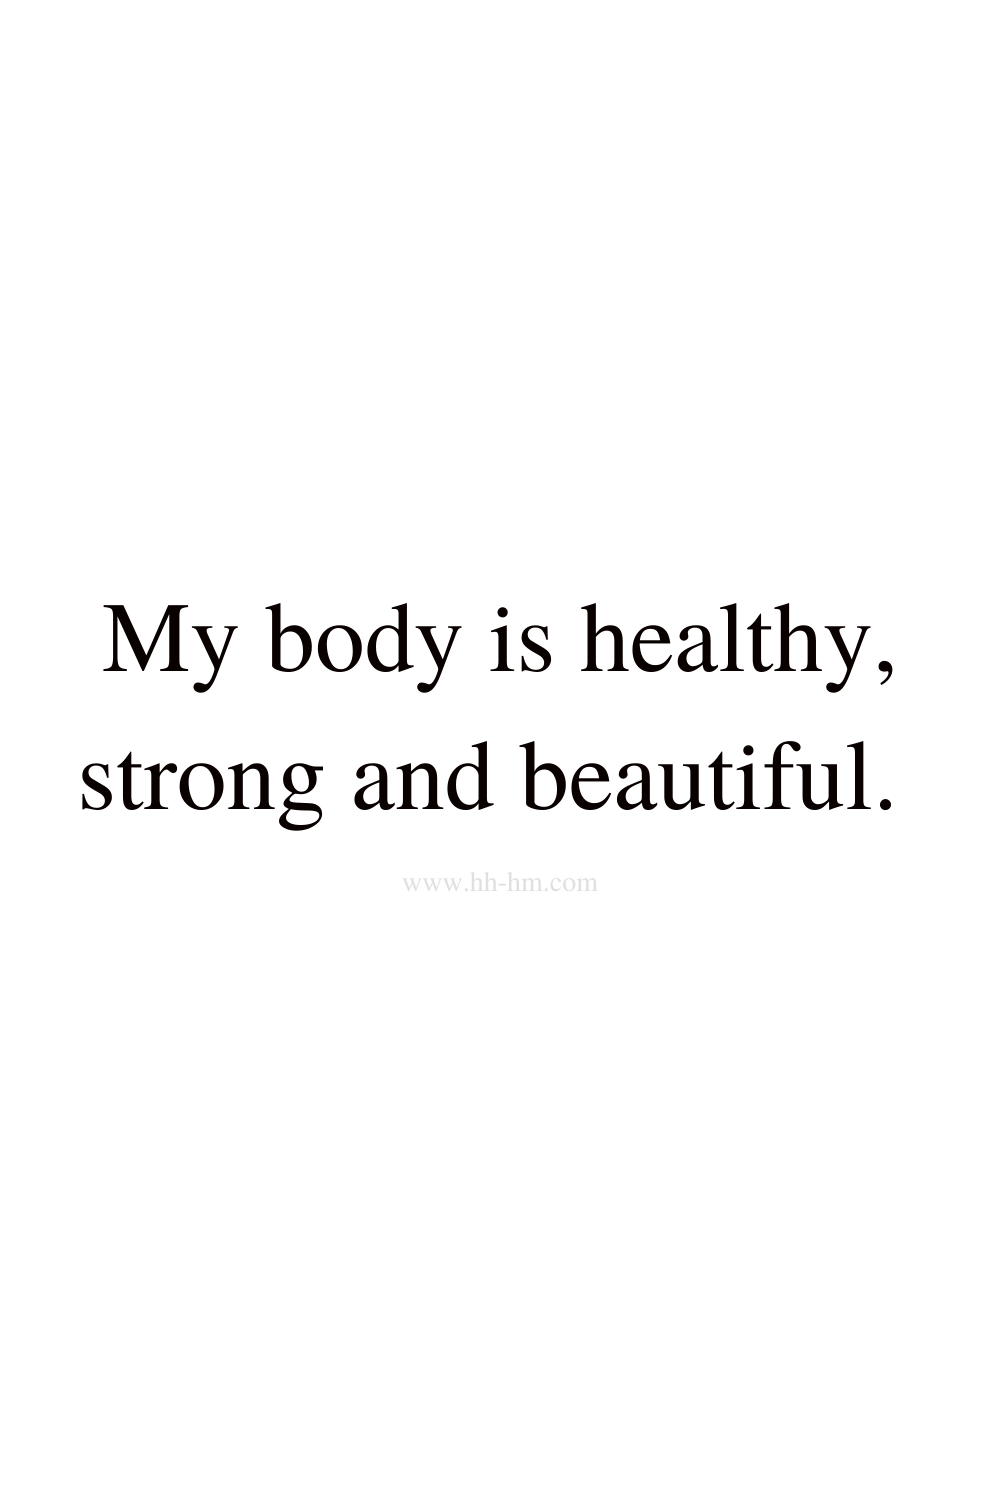 My body is healthy, strong and beautiful -self love and self confidence morning affirmations